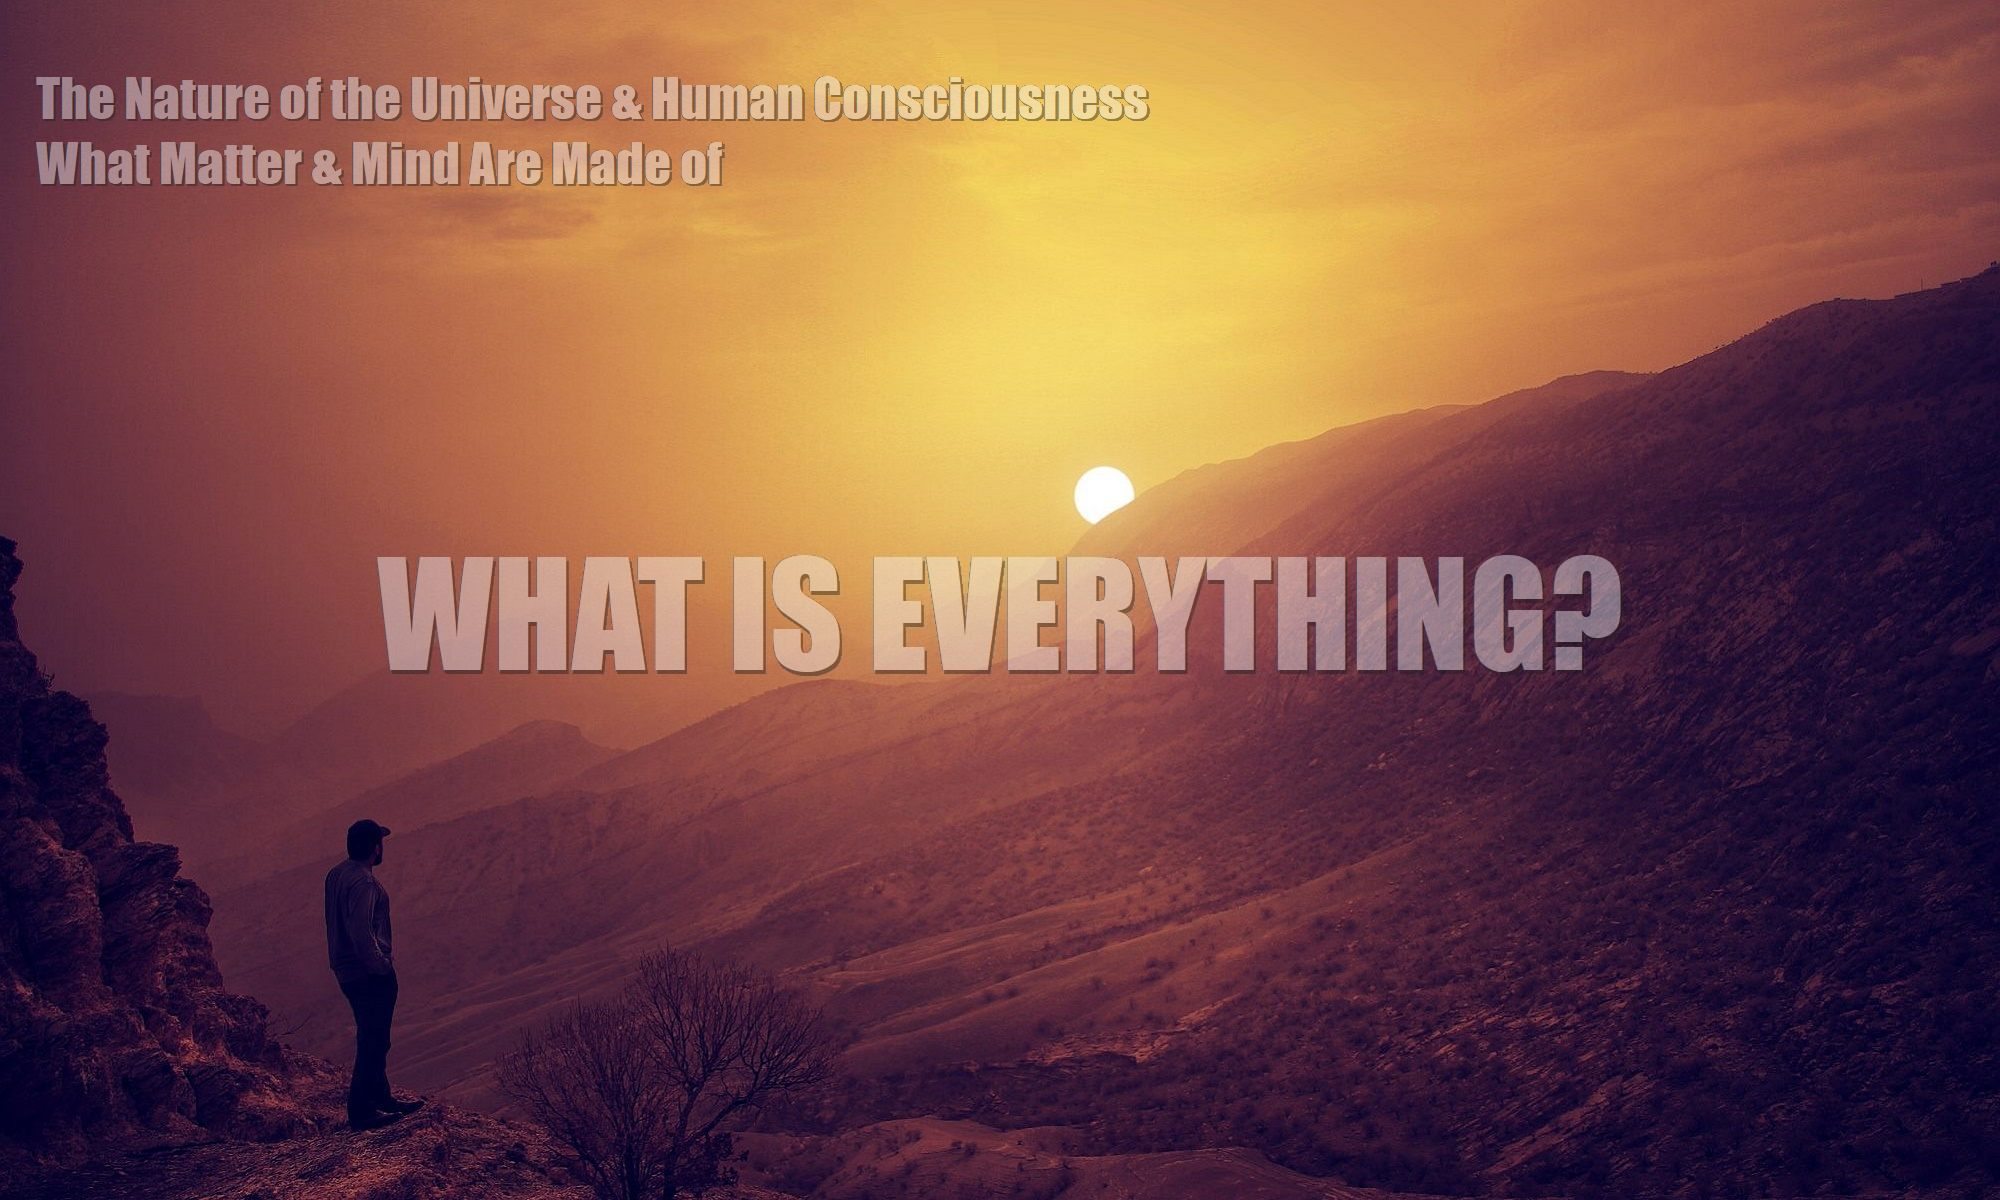 what-is-everything-the-nature-of-the-universe-human-consciousness-what-matter-mind-are-made-of-fields-zpf-2000